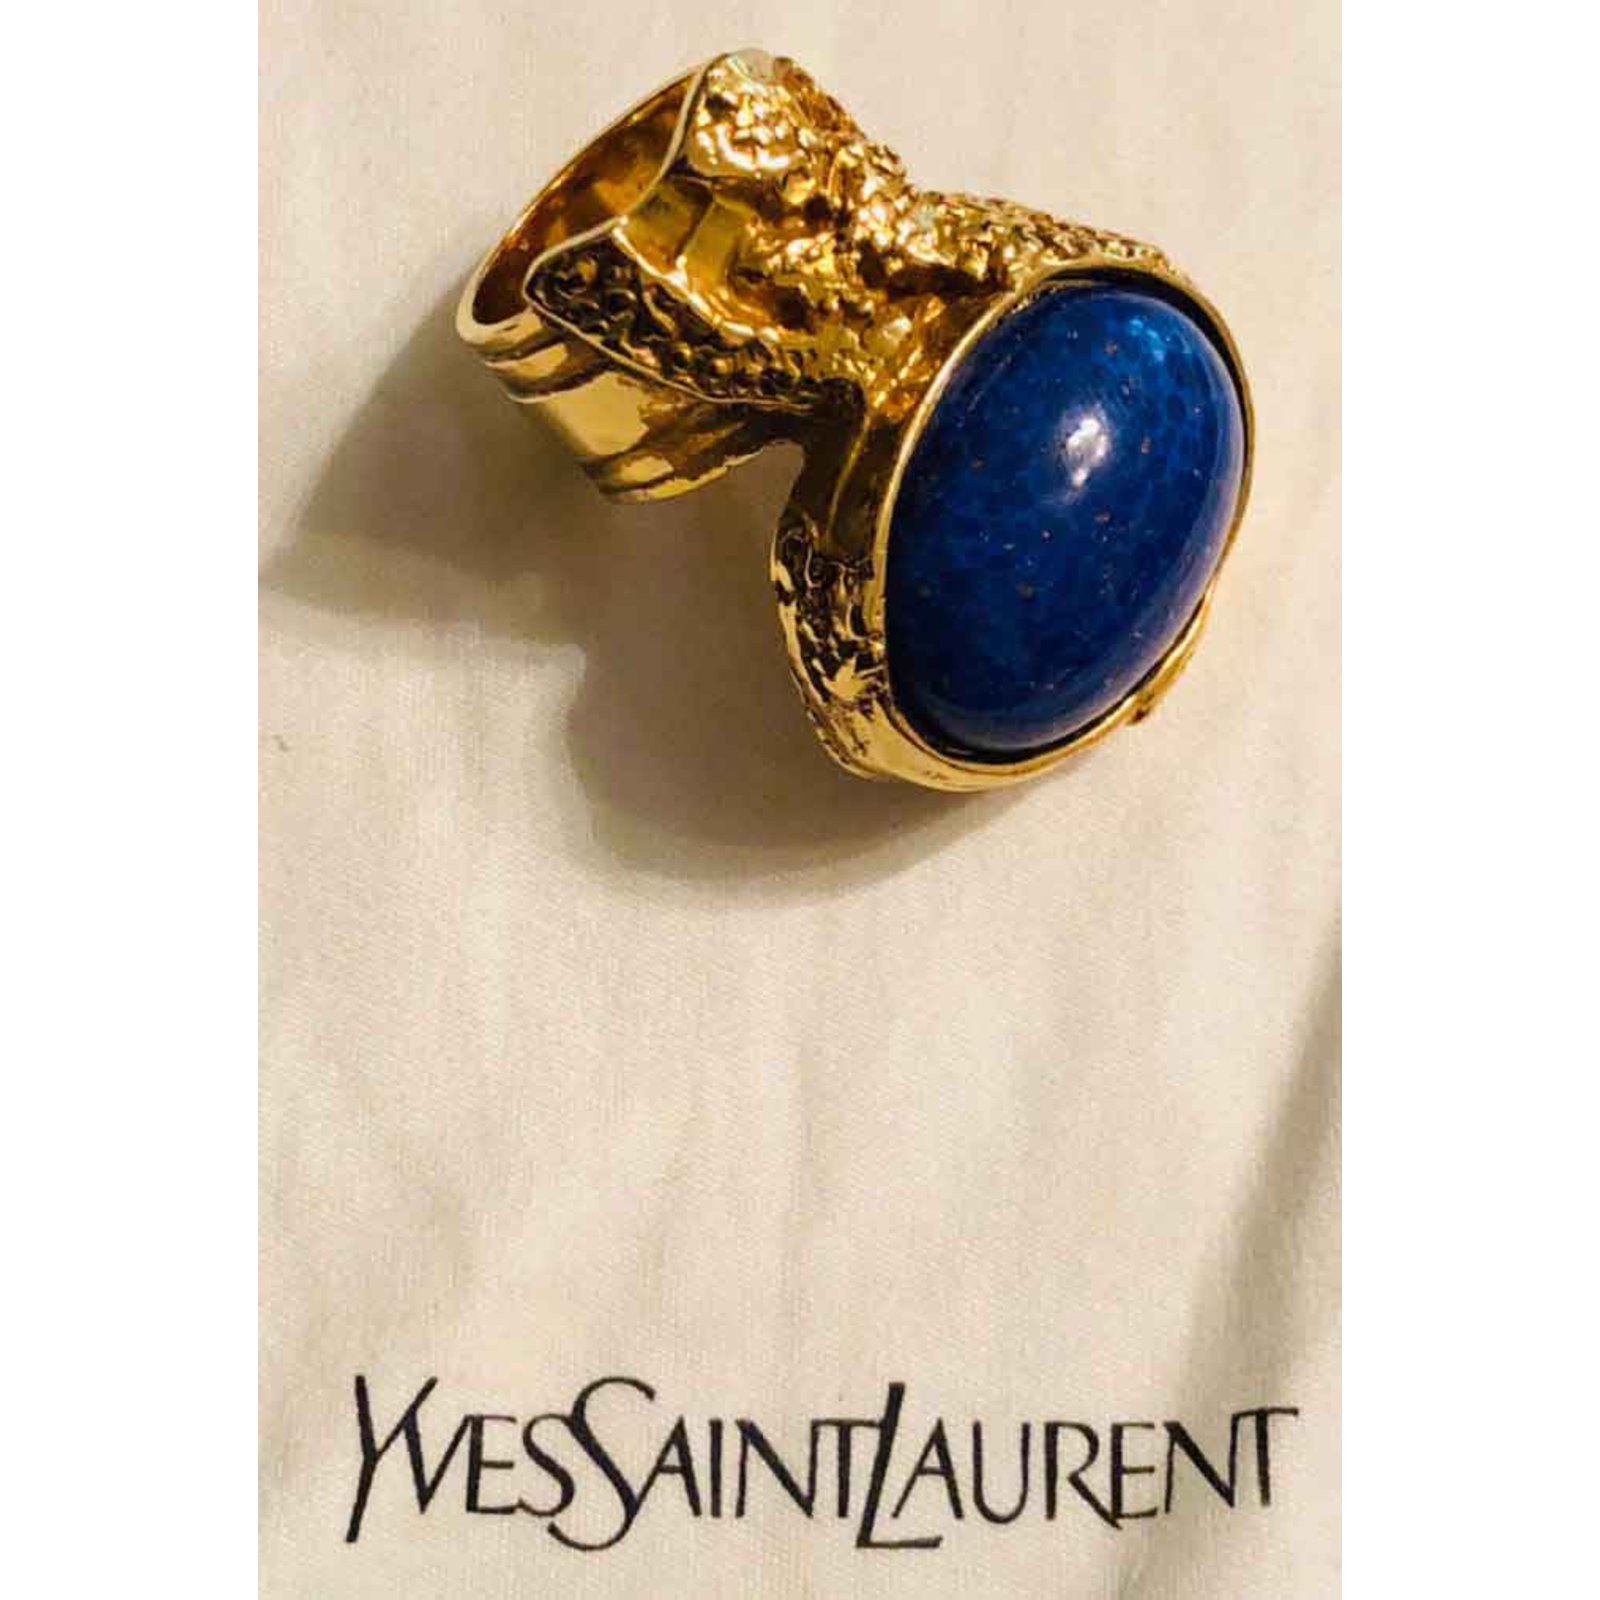 05af13db69e2 Yves Saint Laurent Sublime Yves Saint Laurent Arty ring Rings Metal ...